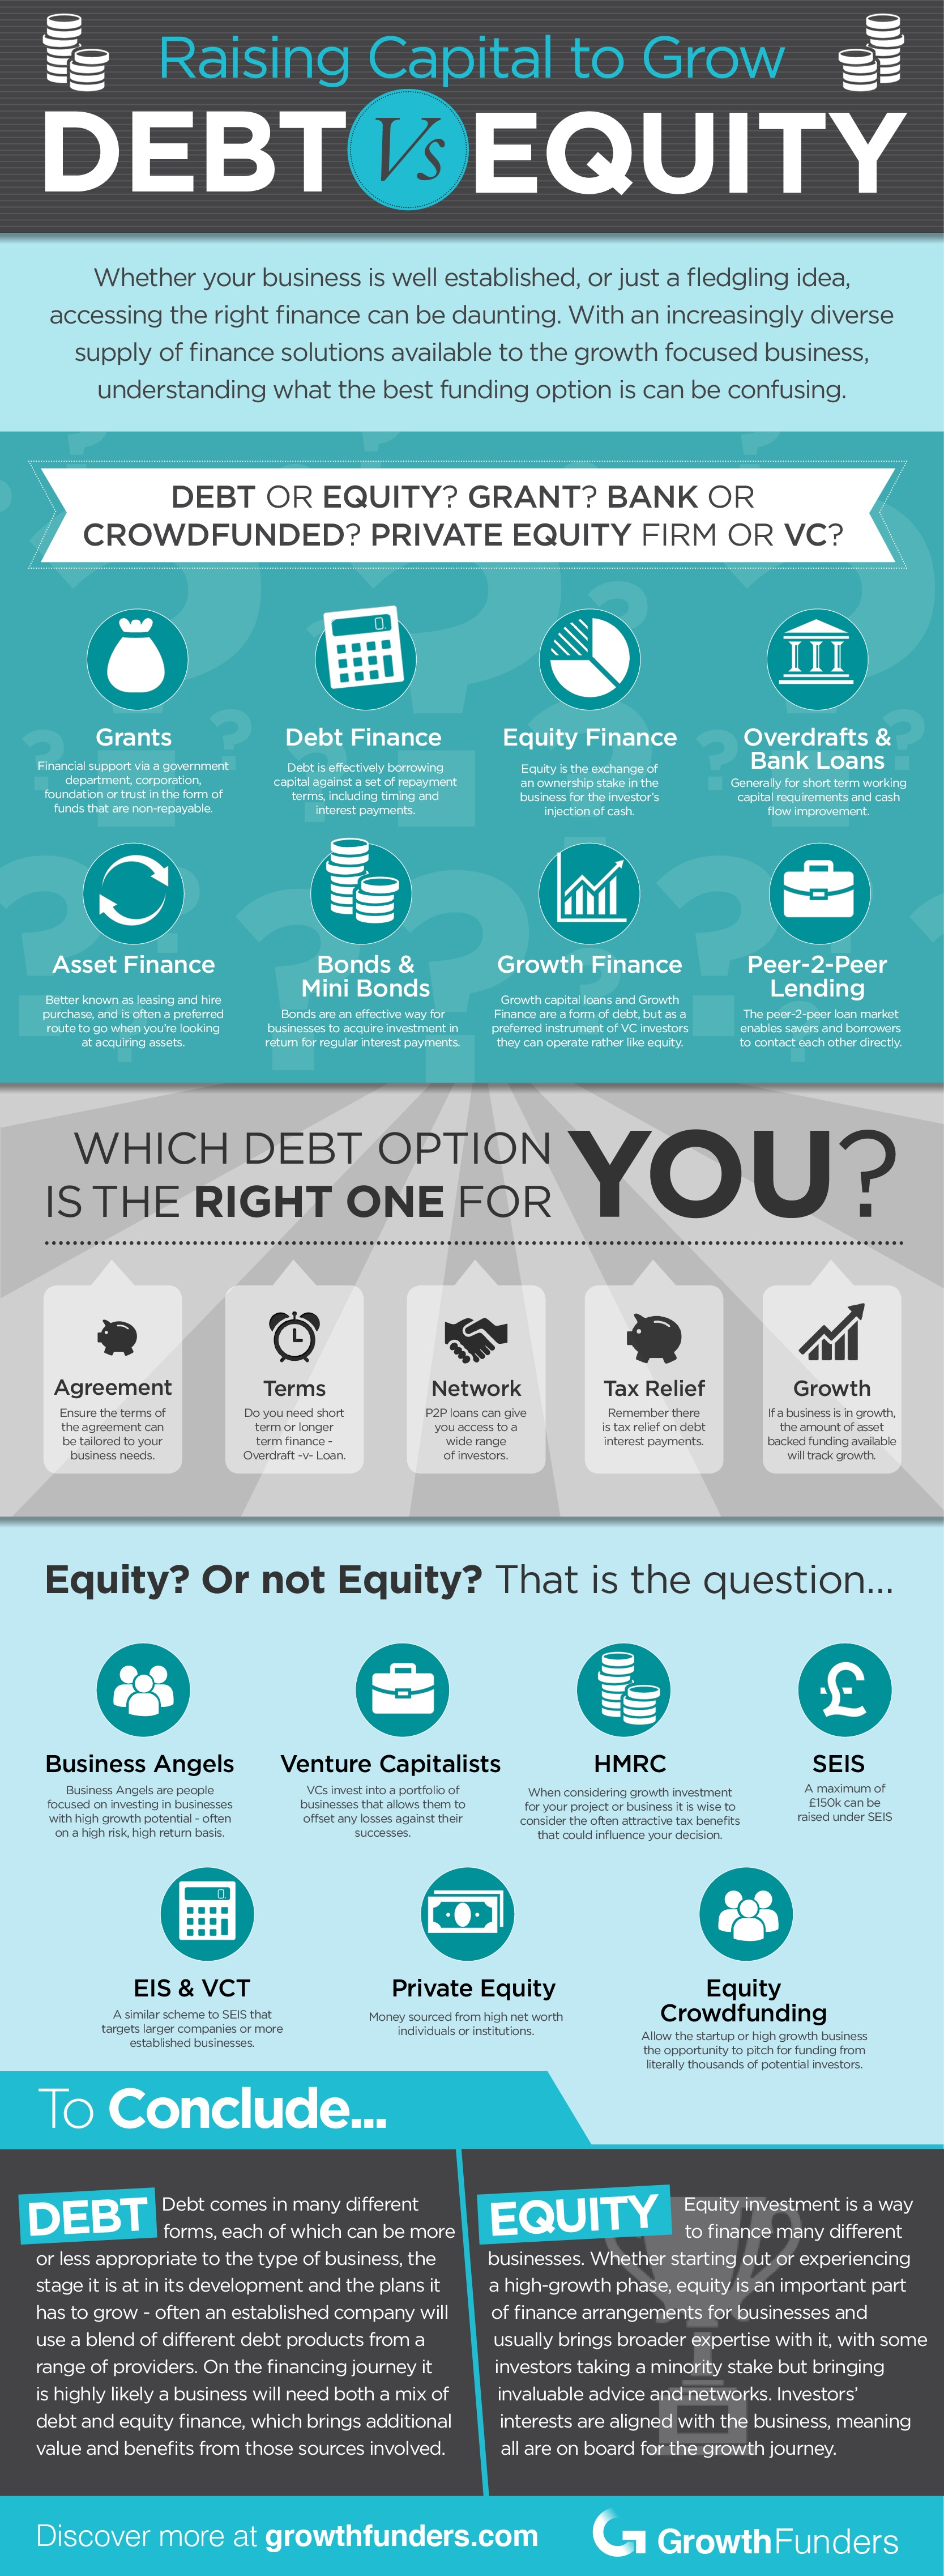 [infographic] Raising capital to grow: delving further into debt and equity